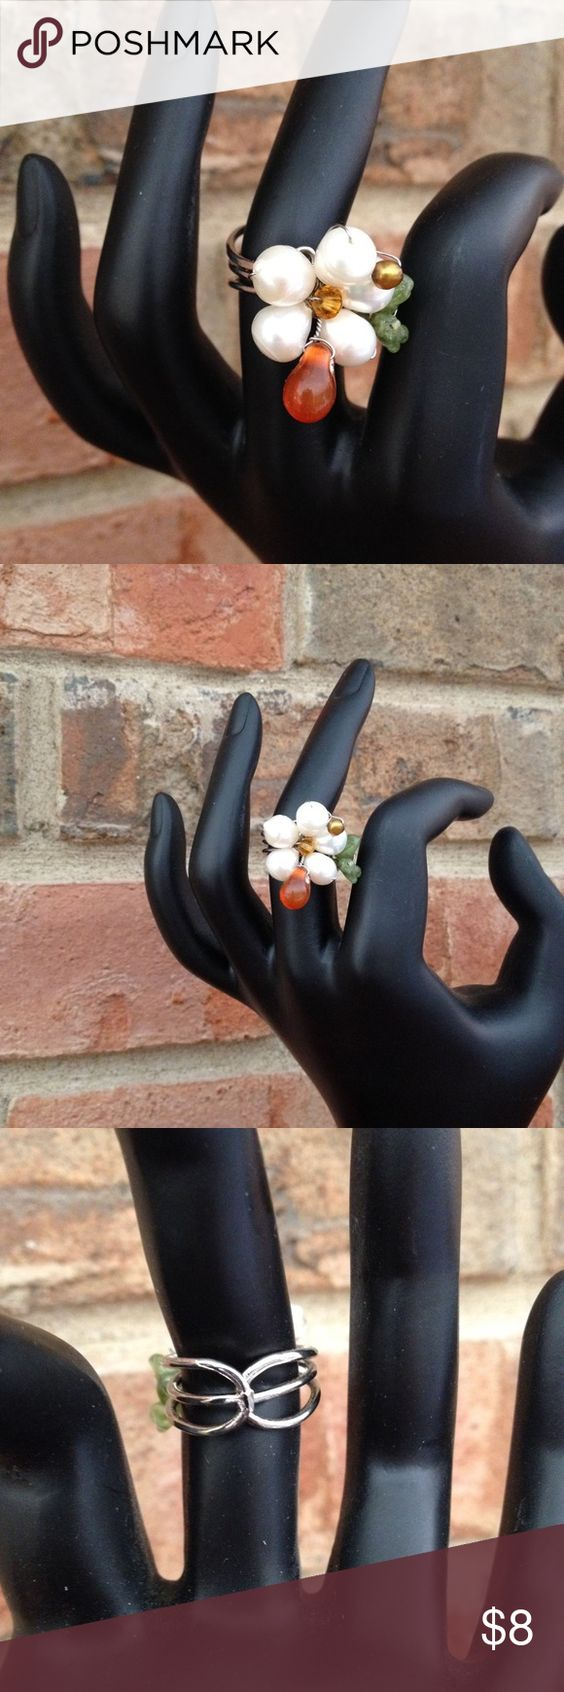 Floral Pearl Beaded Ring Adjustable.  Like new condition - worn one time. Pier One Jewelry Rings